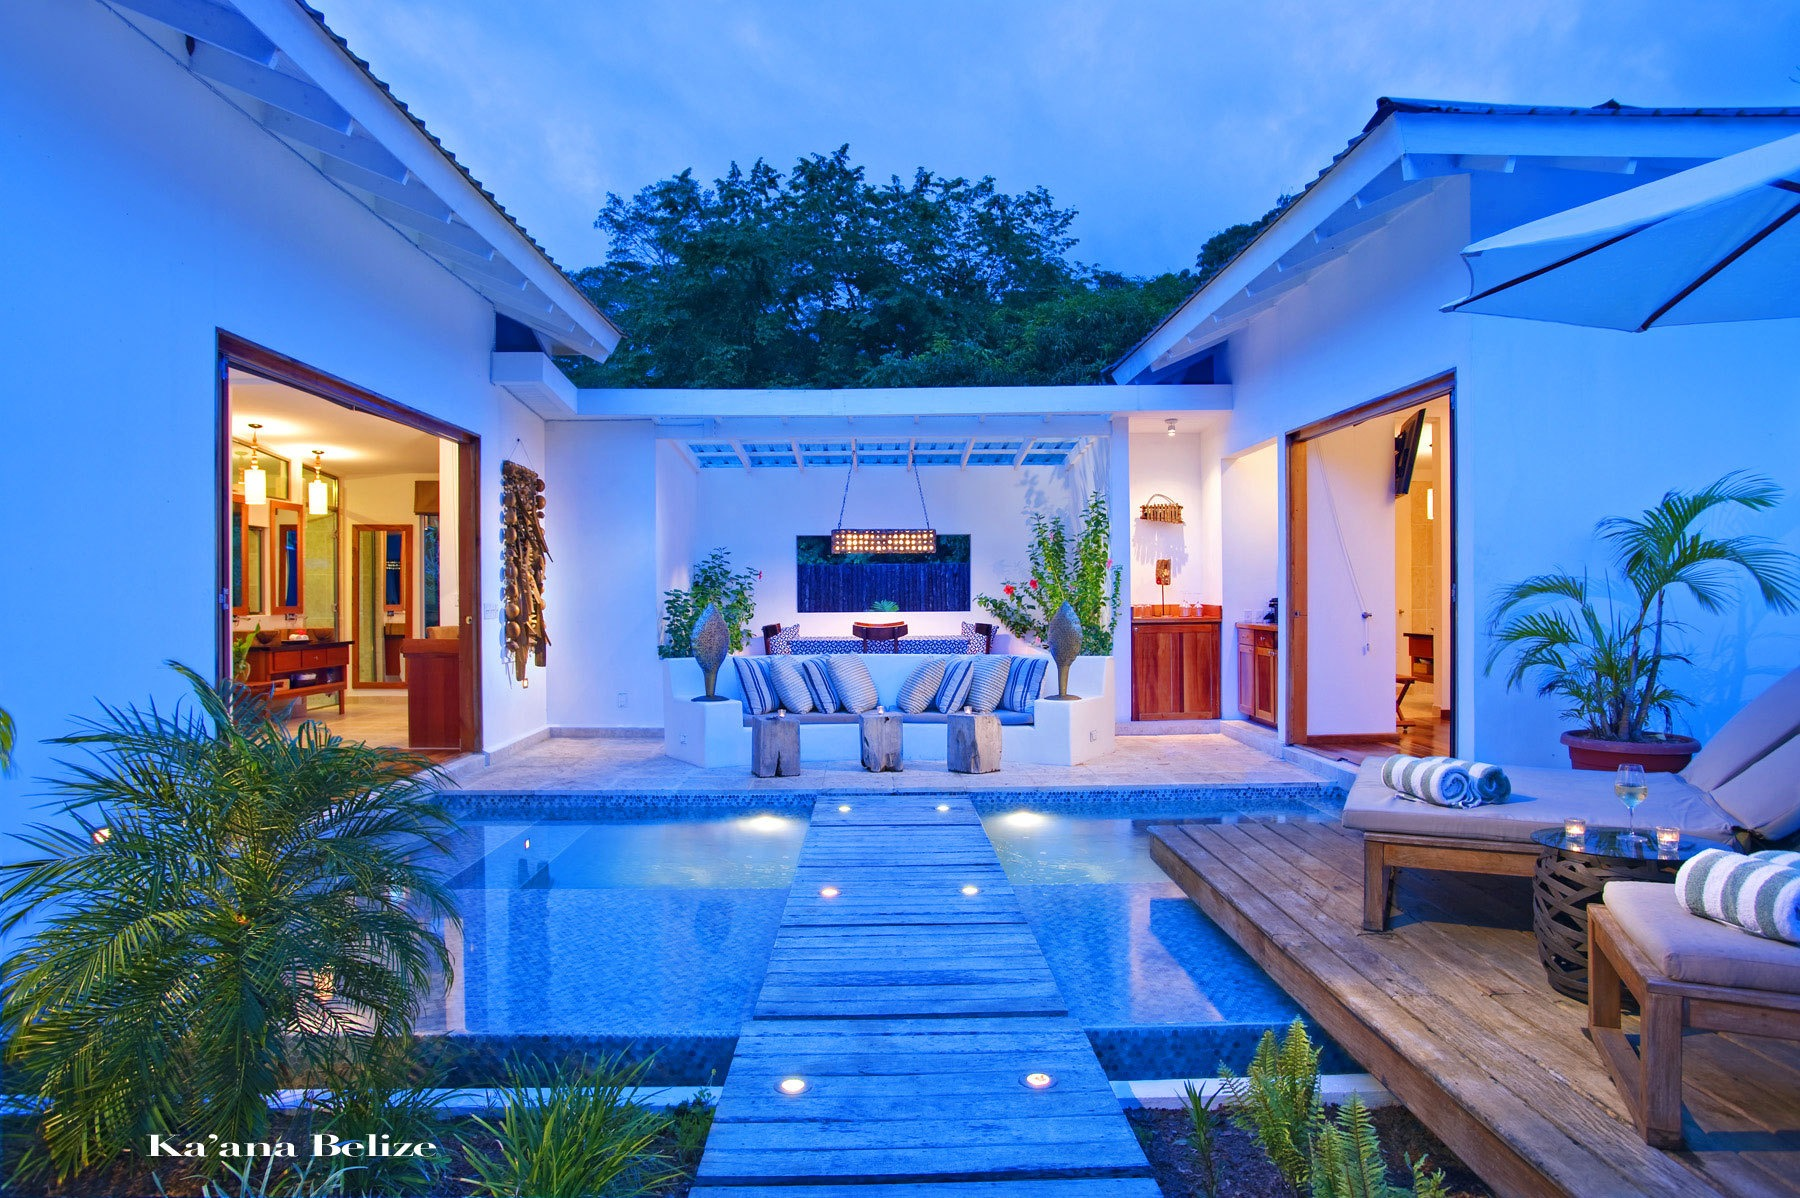 luxury belize jungle lodges and resorts